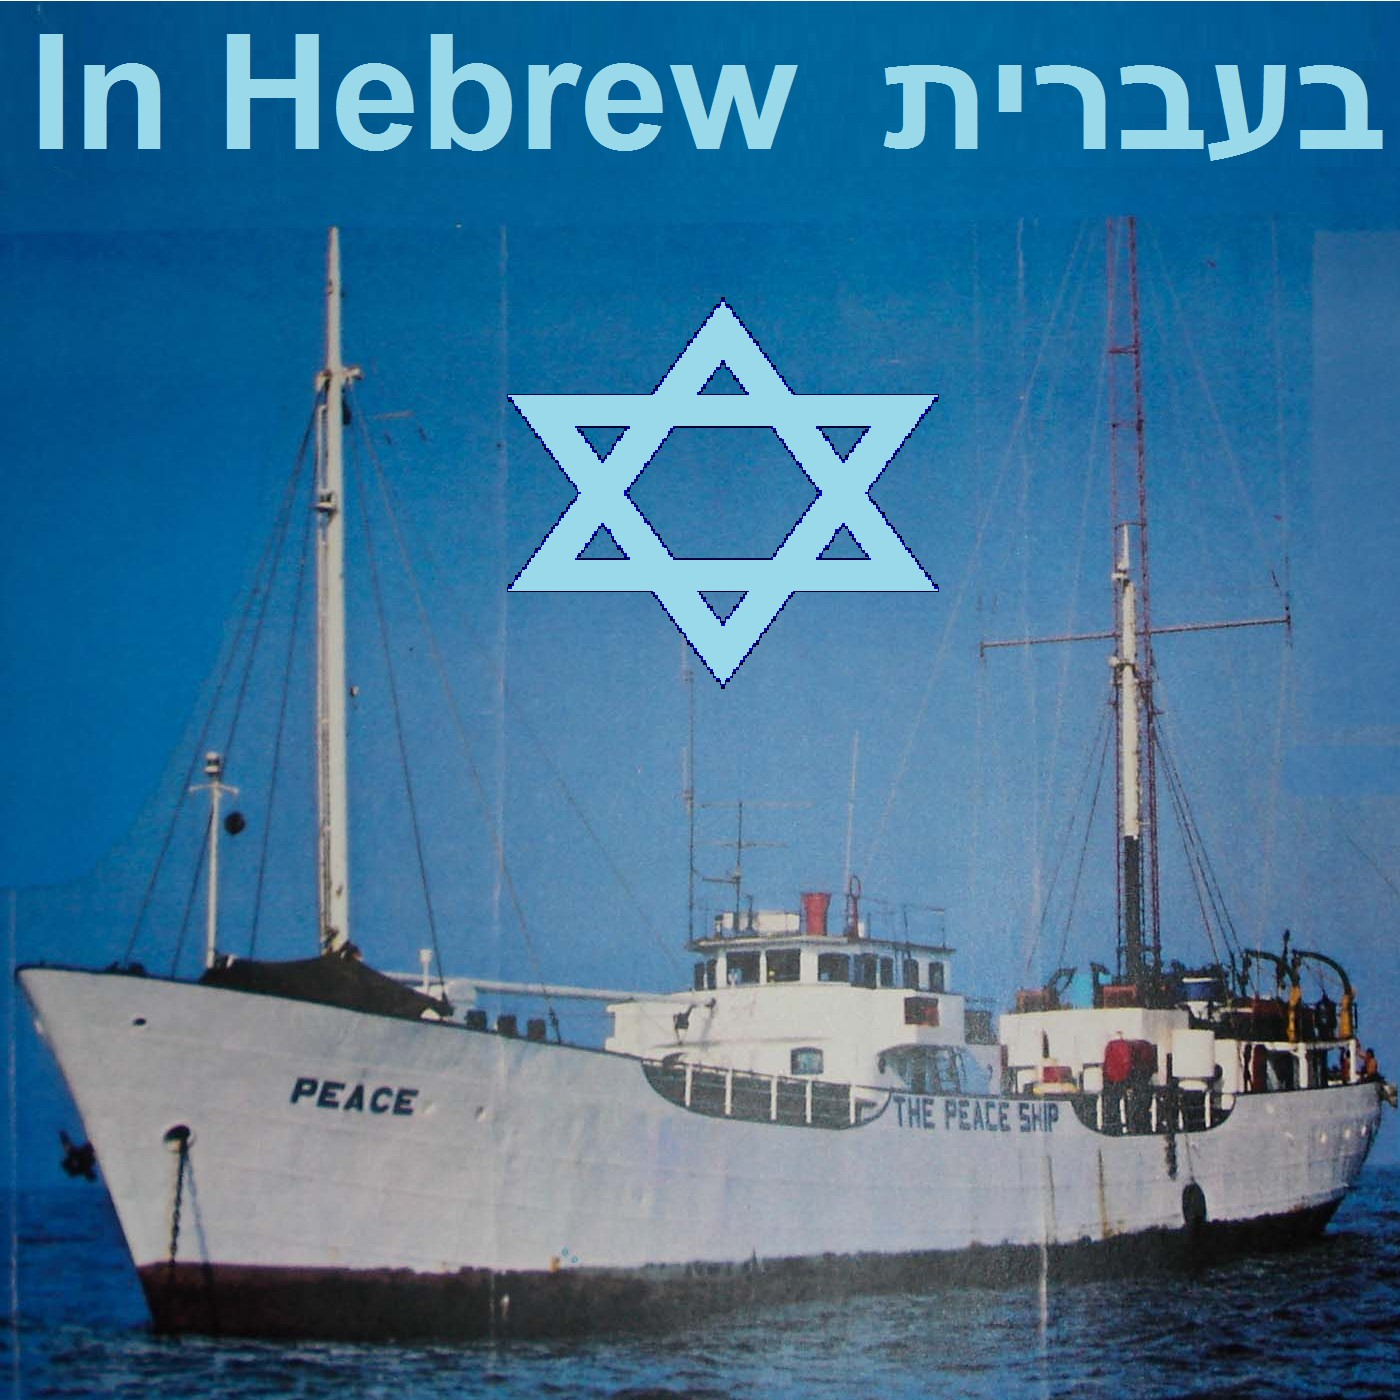 In Hebrew